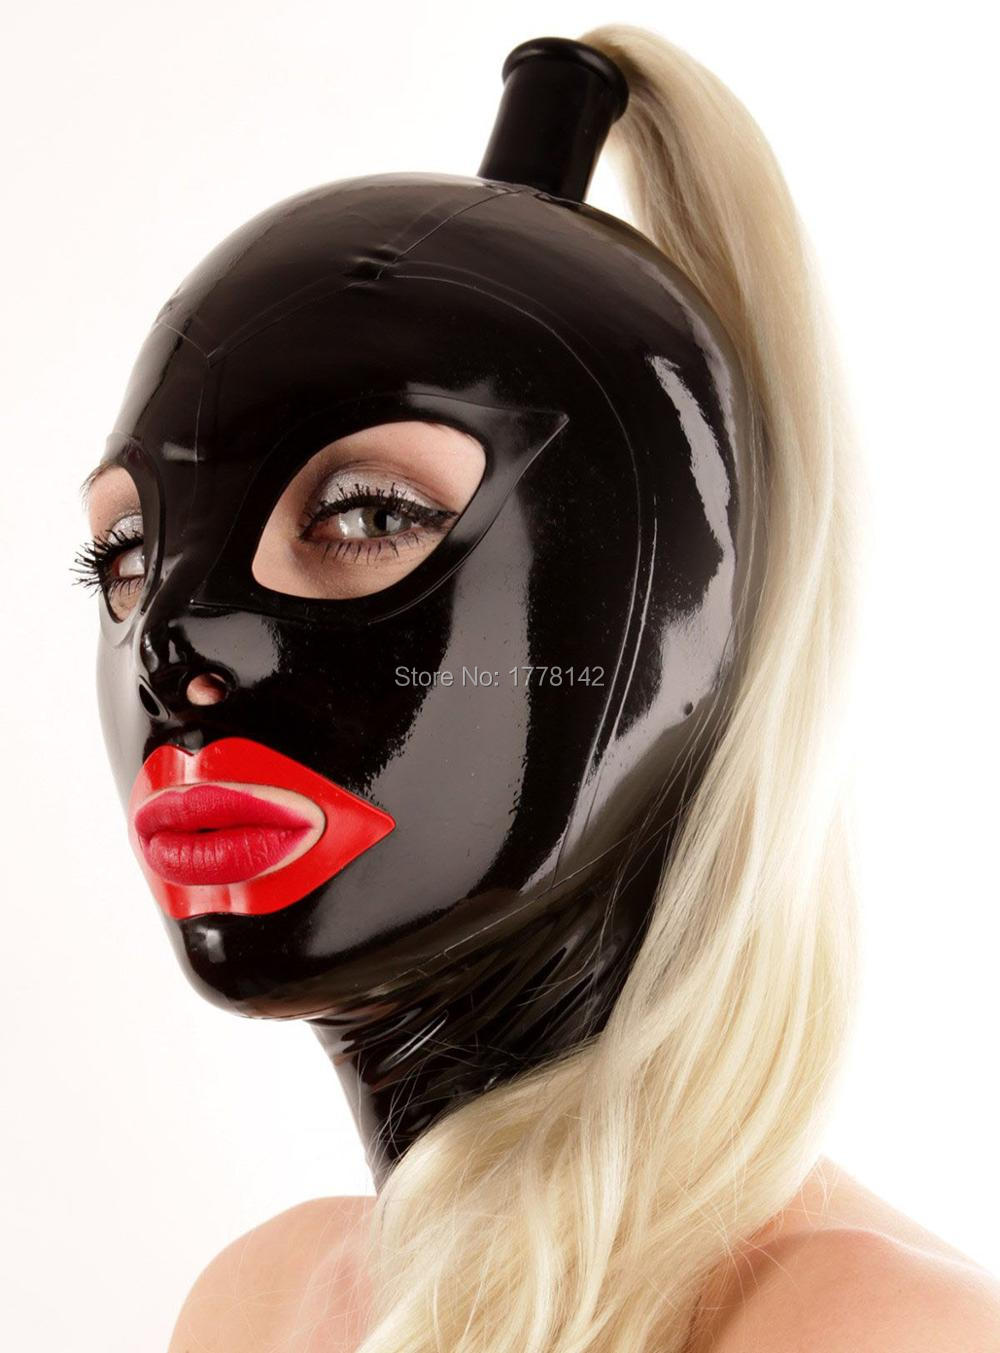 Gummy rubber mask Inflatable latex hood with anime eyes and lips custom color